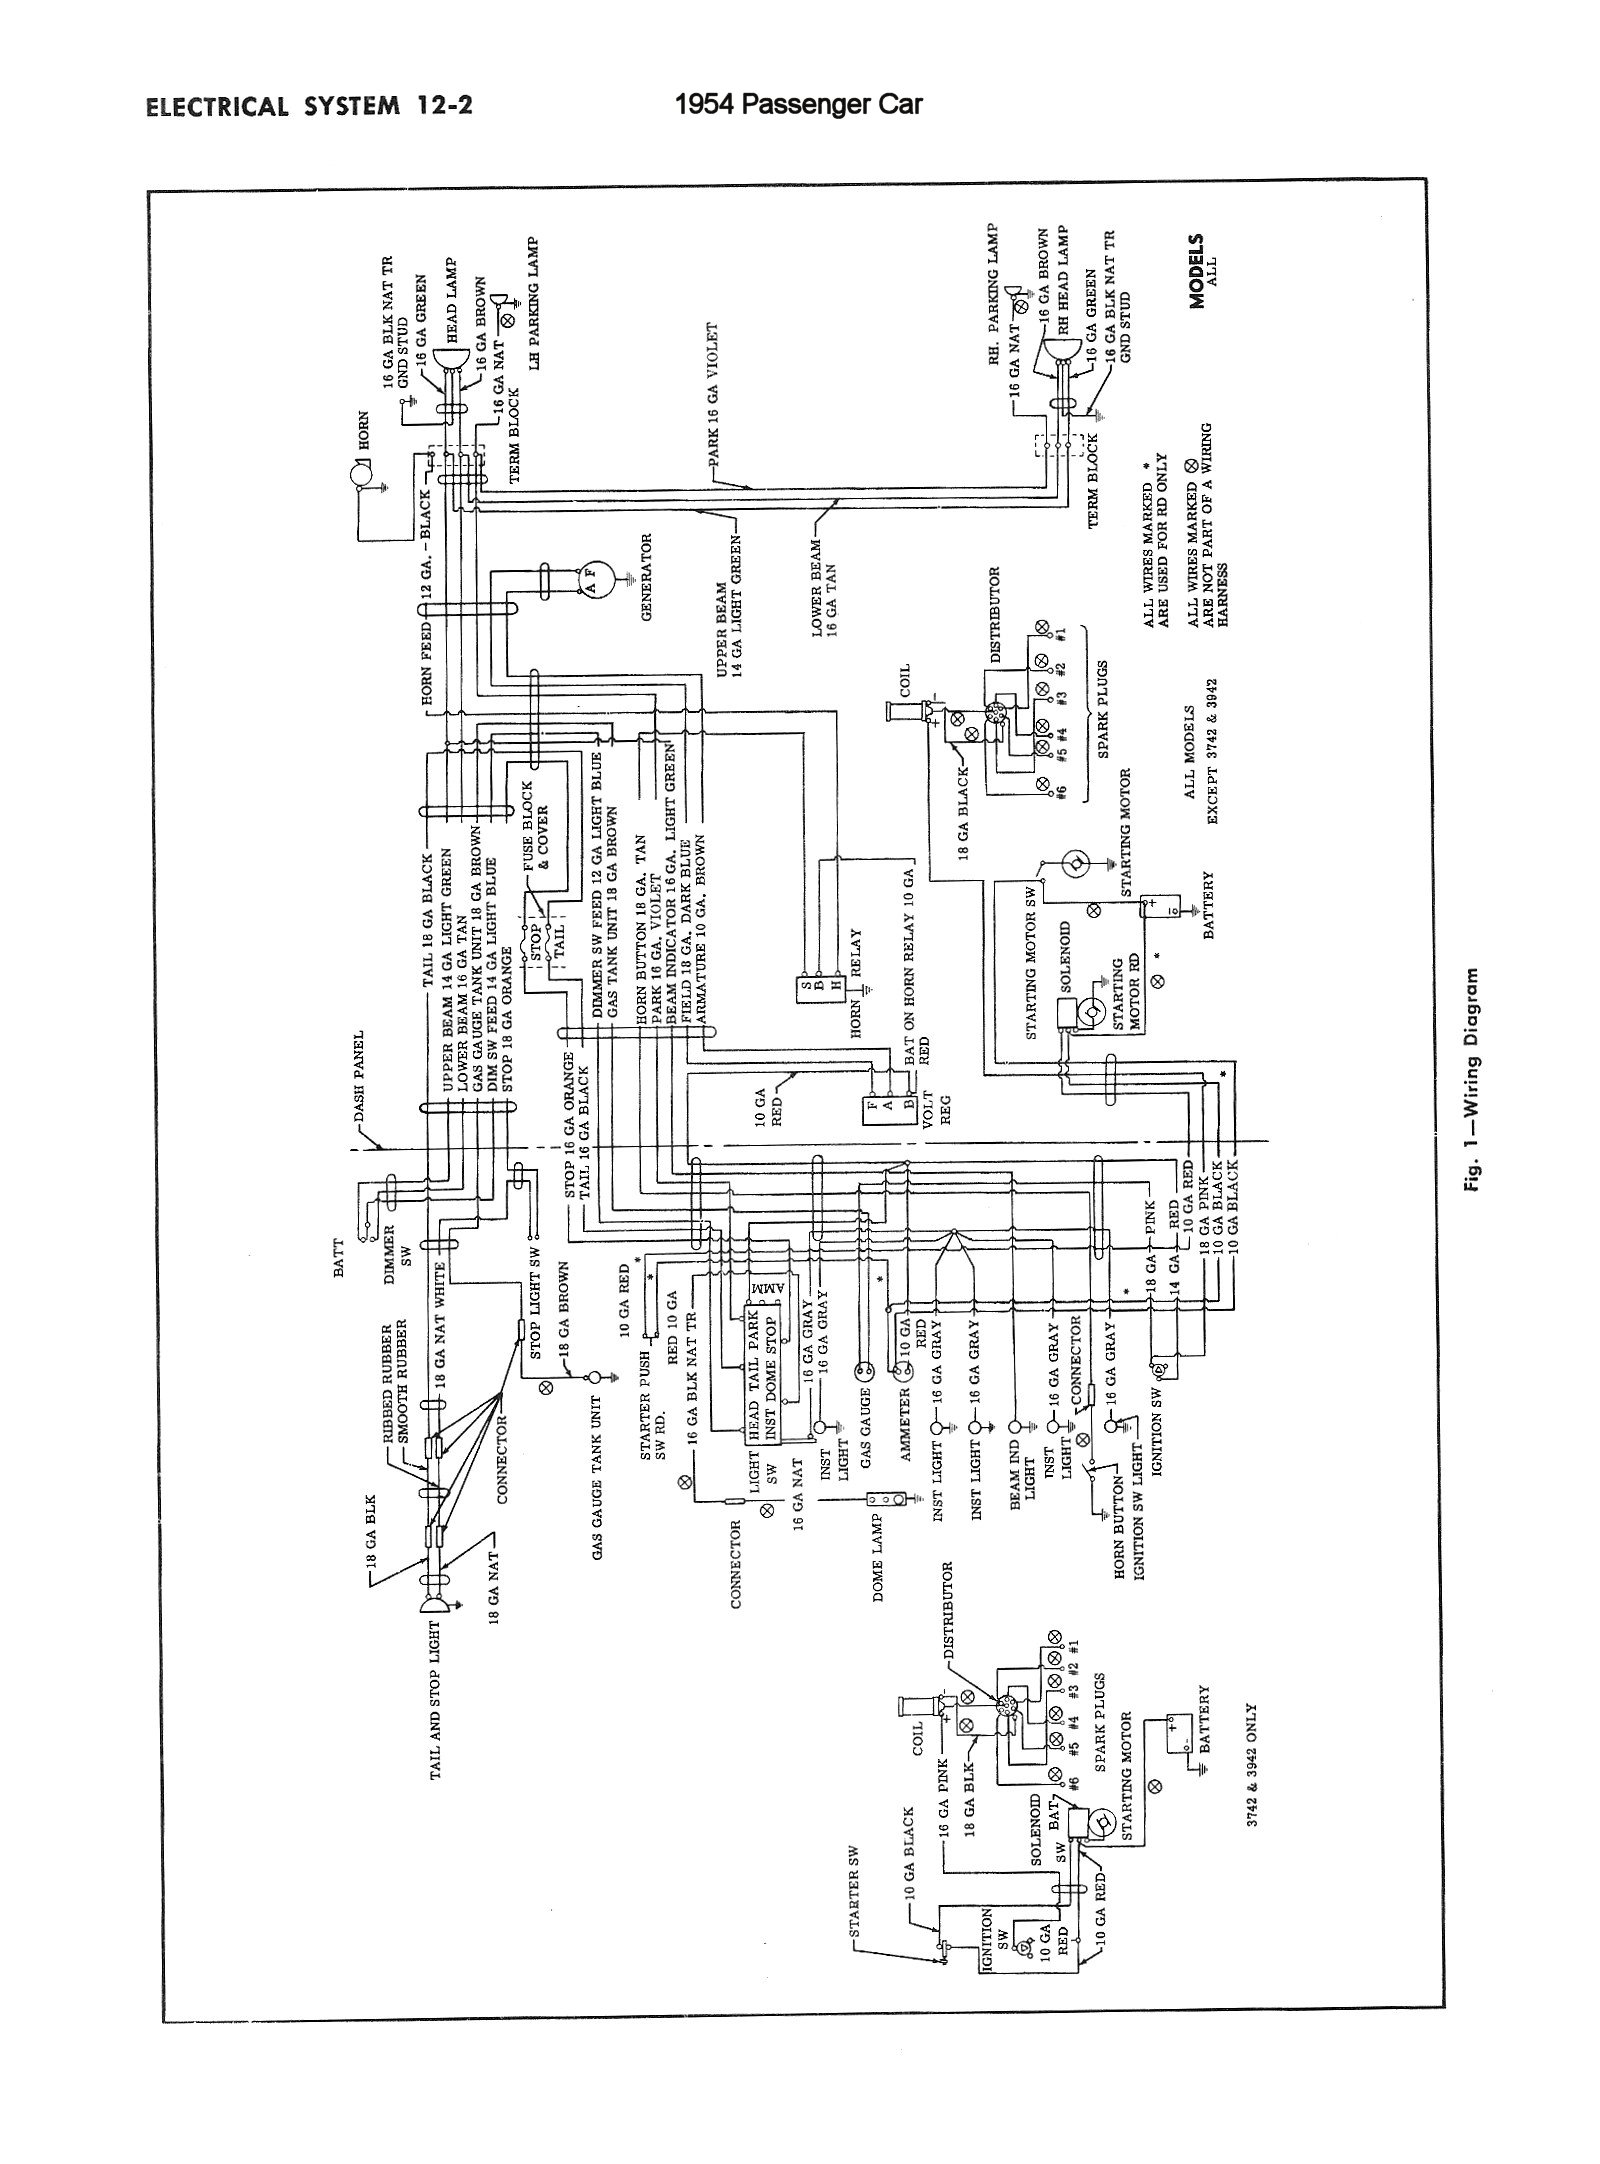 Home Wiring In 1954 Circuit Diagram Symbols Malaysia Search For Diagrams Chevy Rh Oldcarmanualproject Com Codes